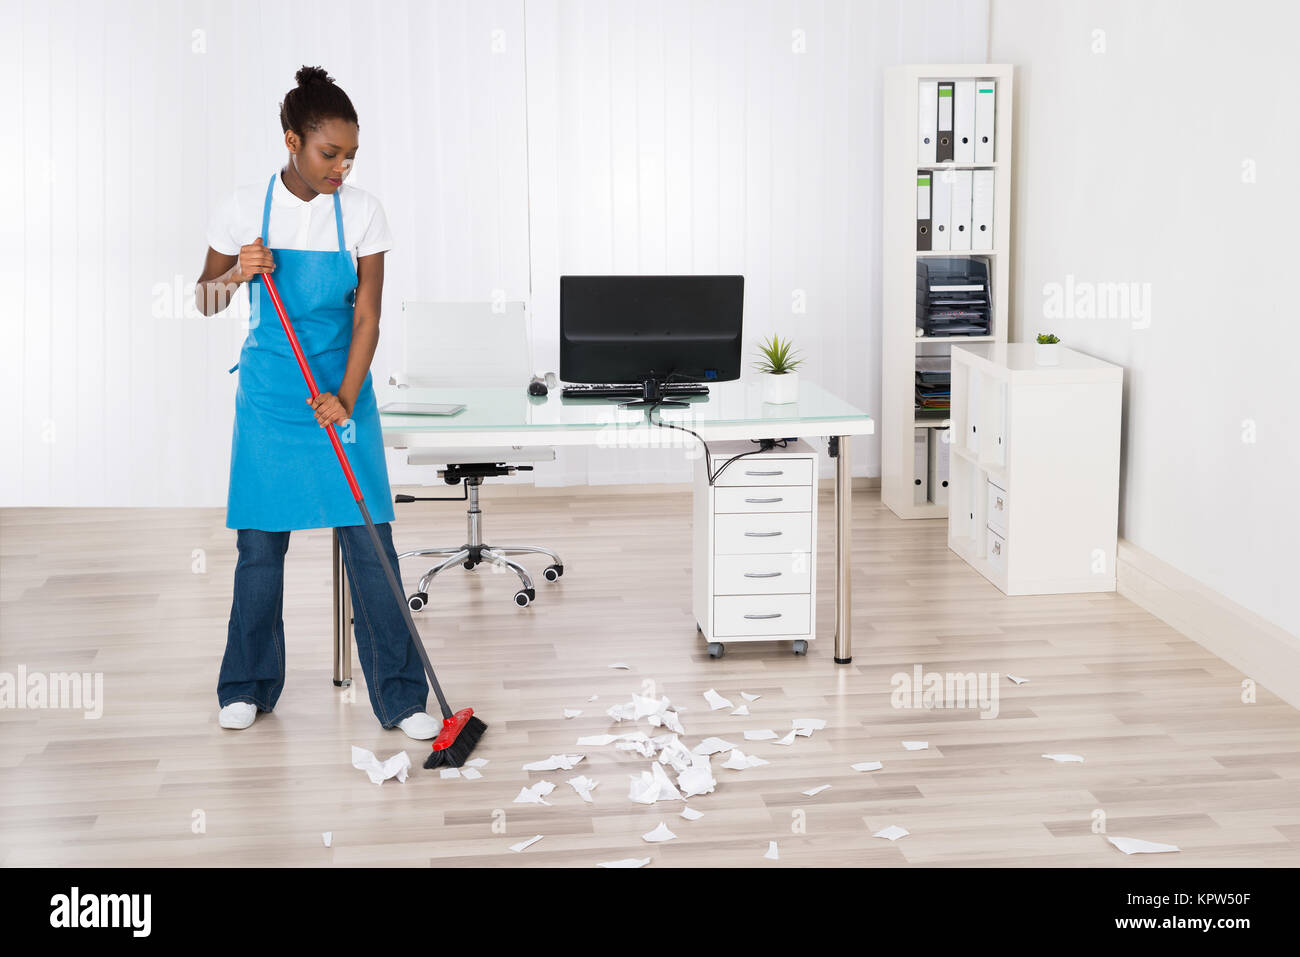 Female Janitor Sweeping Hardwood Floor - Stock Image